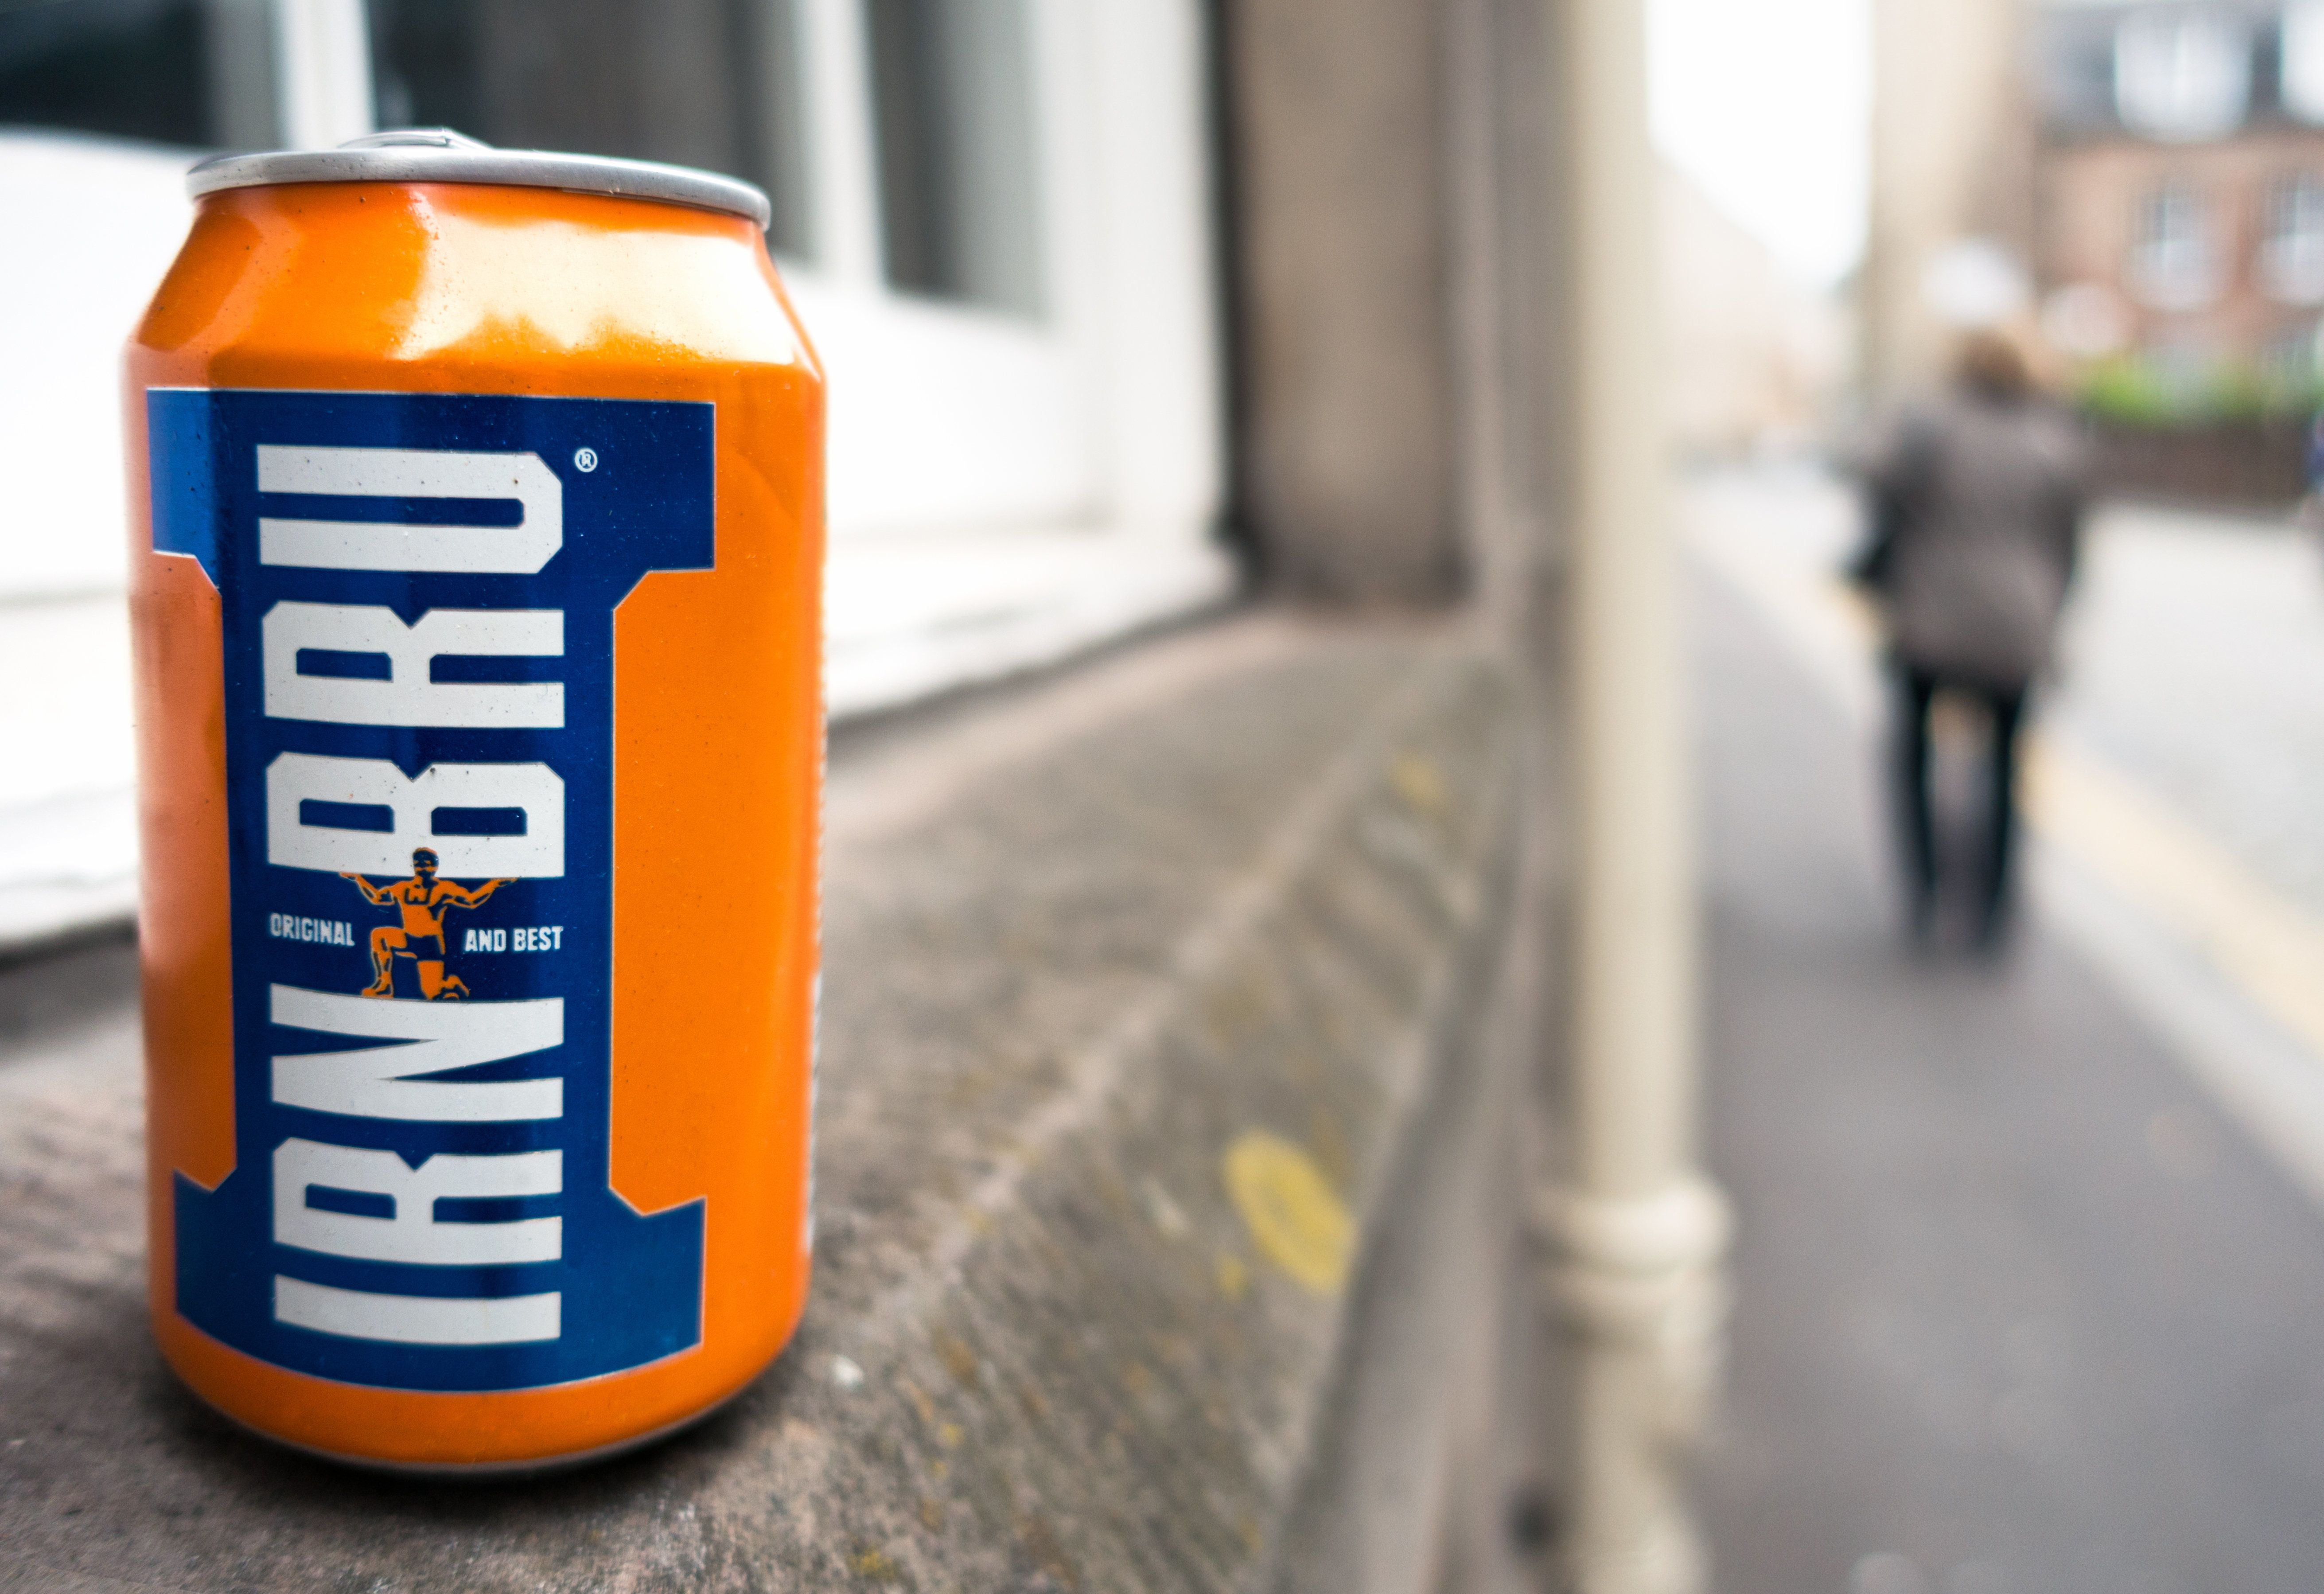 Trump Accused Of 'Declaring War' On Scotland After Banning Irn-Bru From Turnberry Golf